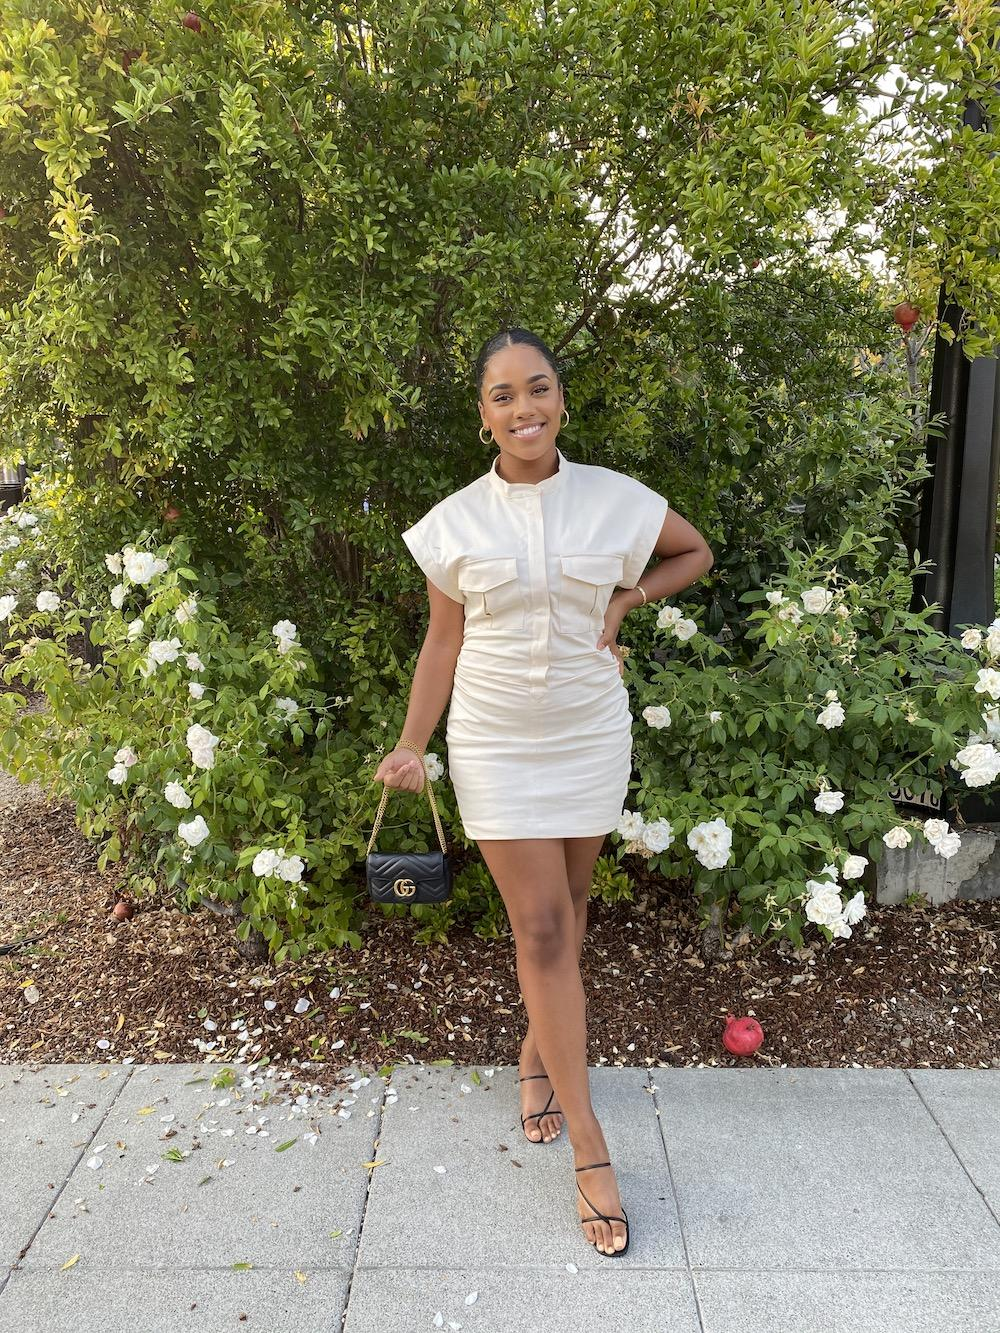 Moss poses before going to dinner at Cole's Chop House in Napa, CA, for her grandmother's 70th birthday in September. Moss wore a neutral dress from Zara paired with black heels from Lulu's and a black bag. Photo courtesy of Camryn Moss